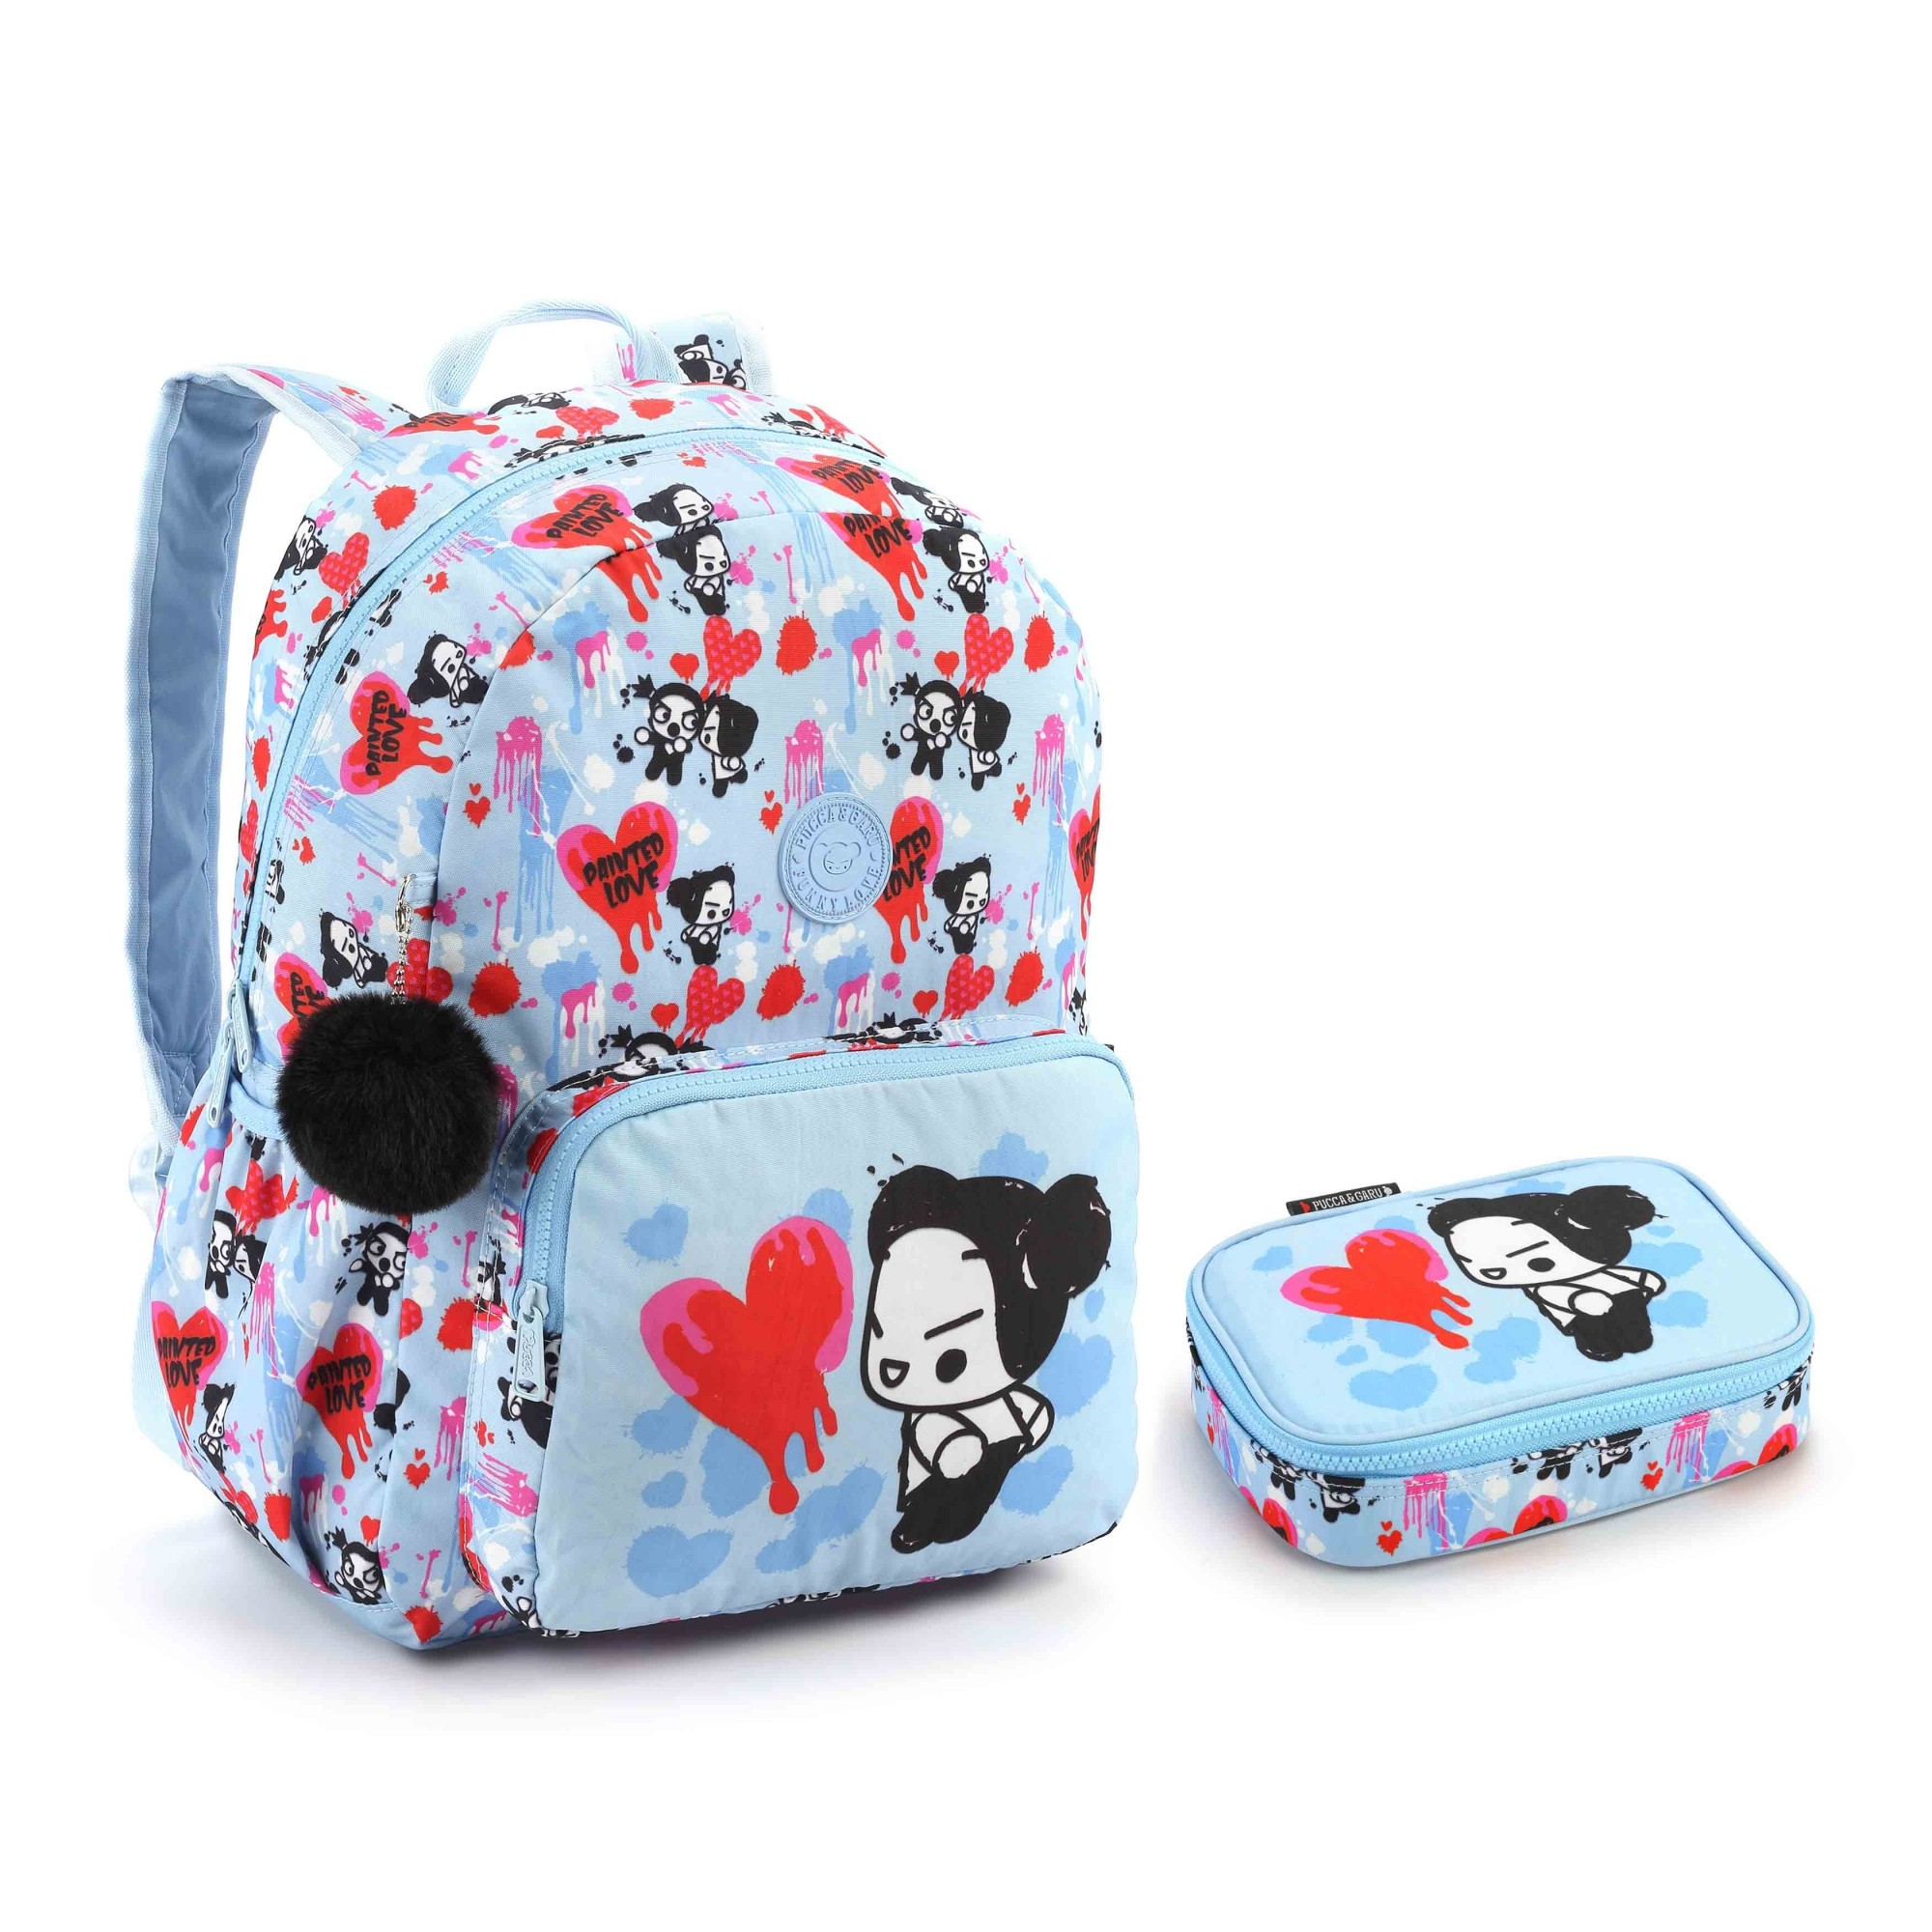 KIT ESCOLAR PUCCA AZUL - SEANITE